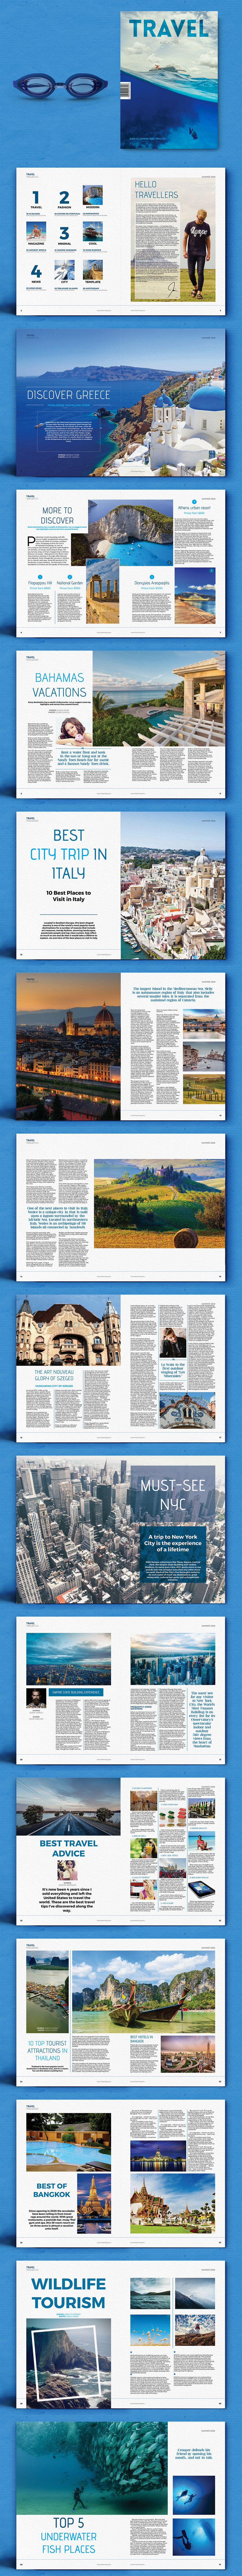 Travel Magazine 32 Pages Template Indesign Indd Best Magazine